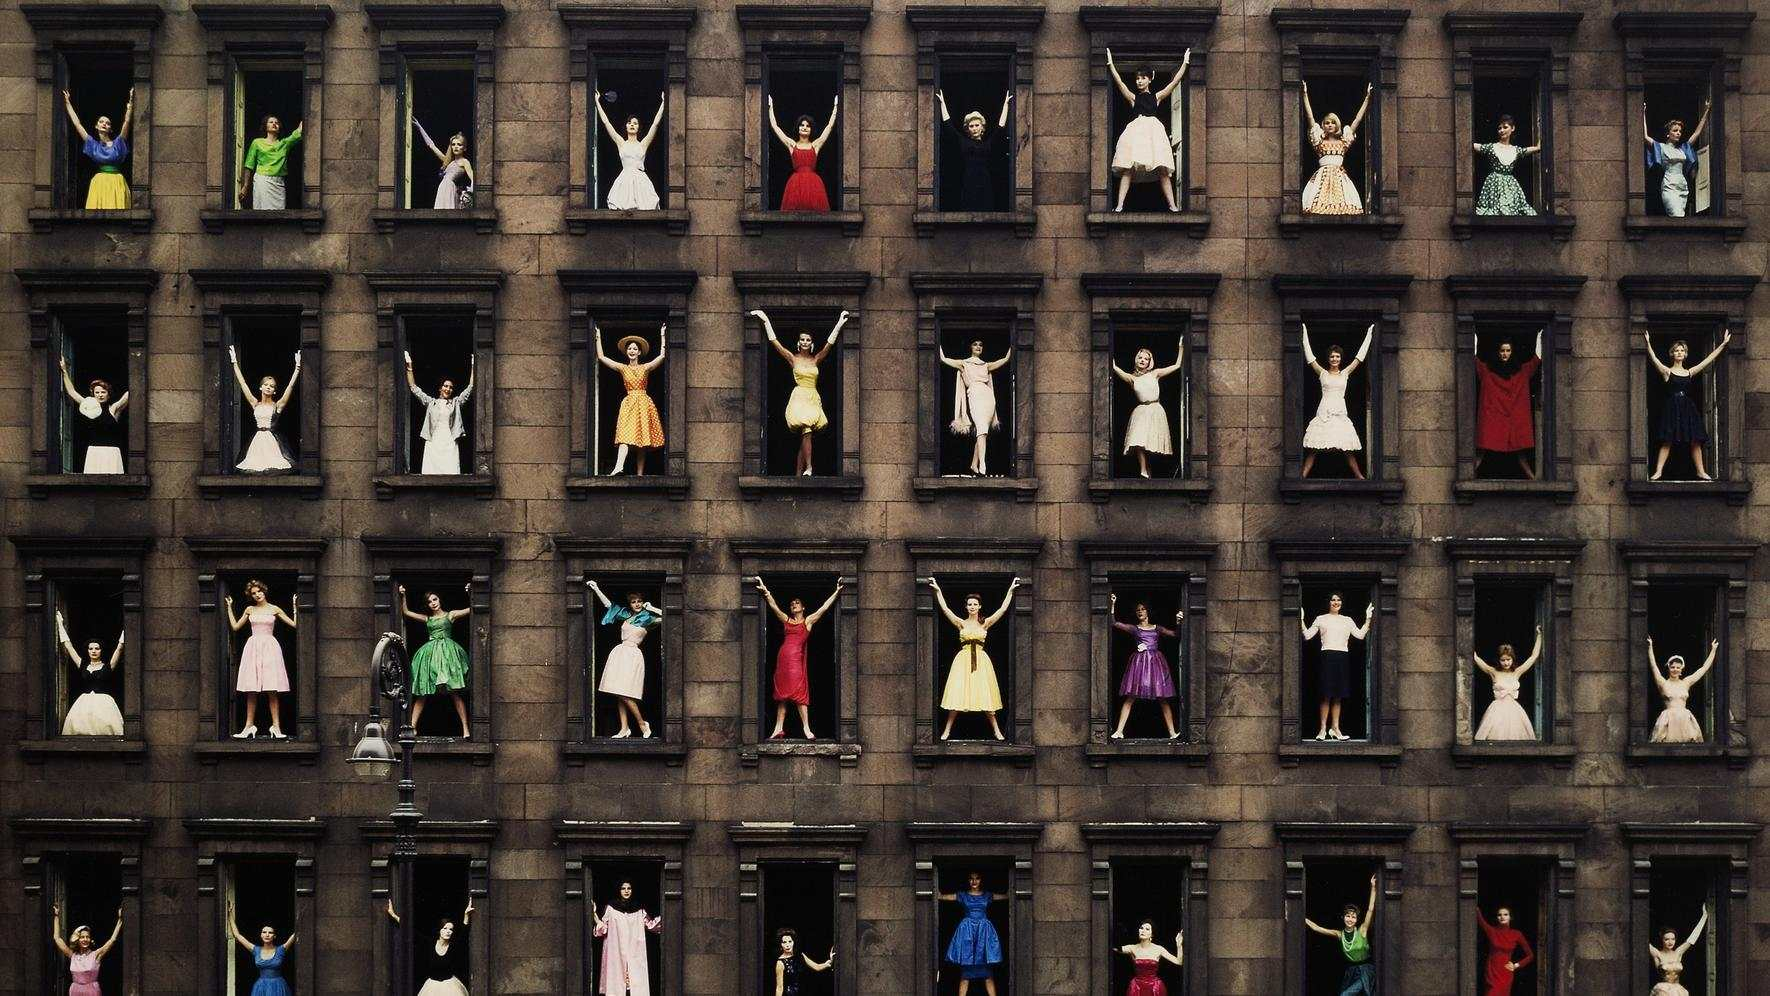 Ormond Gigli New York City (Girls In The Windows) Sotheby's